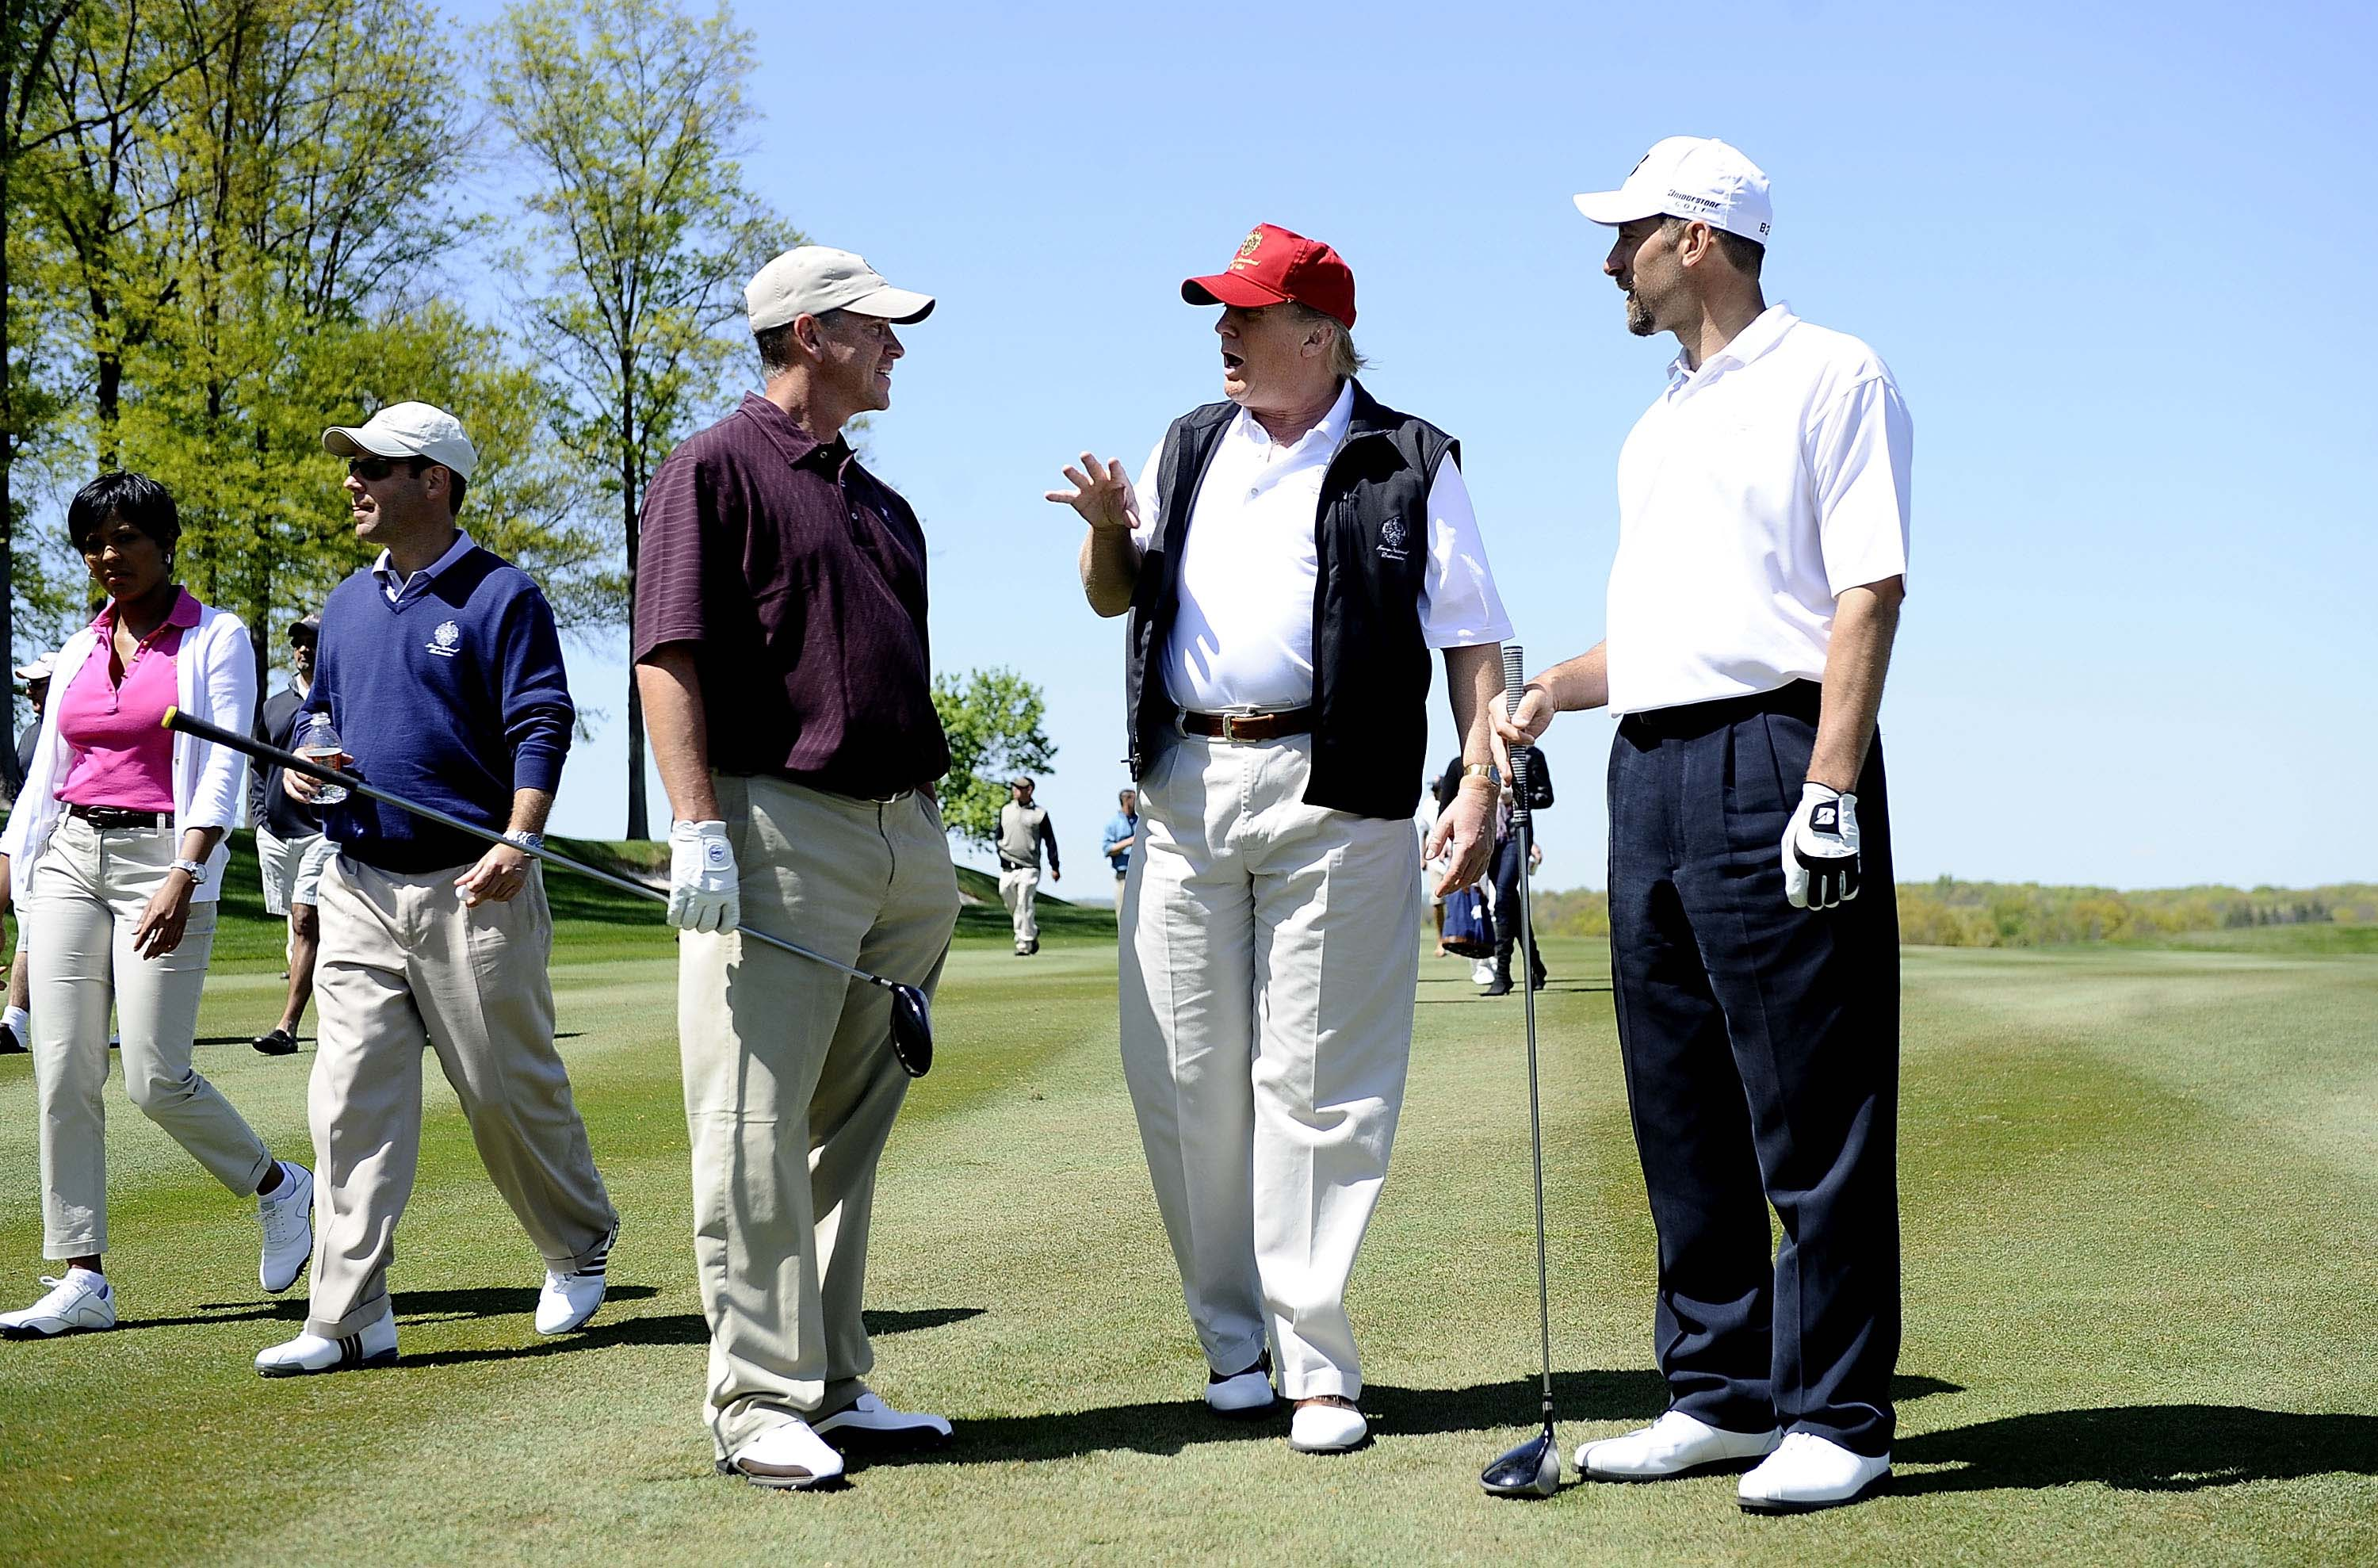 Tom Glavine, John Smoltz and Donald J. Trump